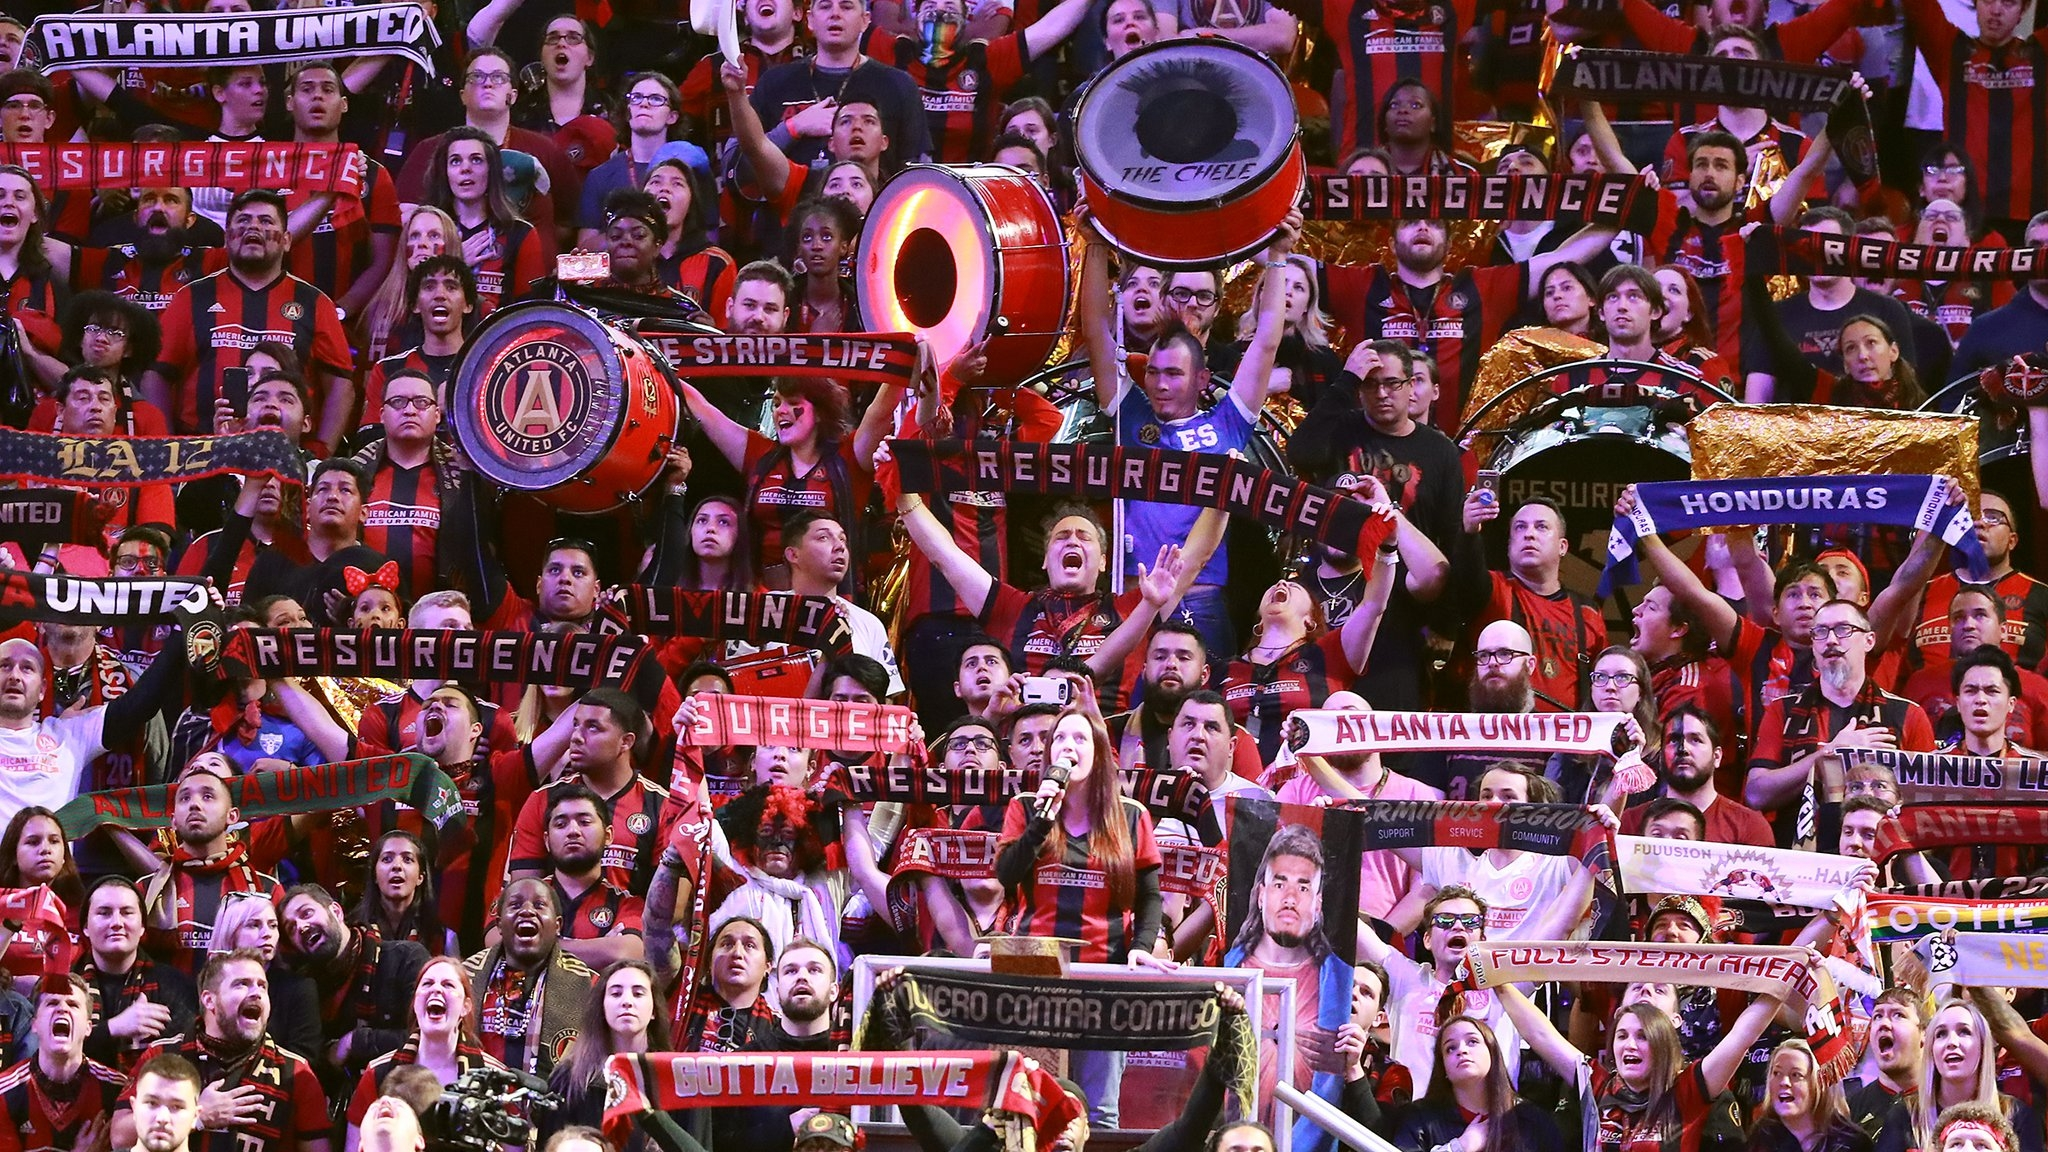 Rowdy, proud Atlanta United fans as entertaining as the game itself